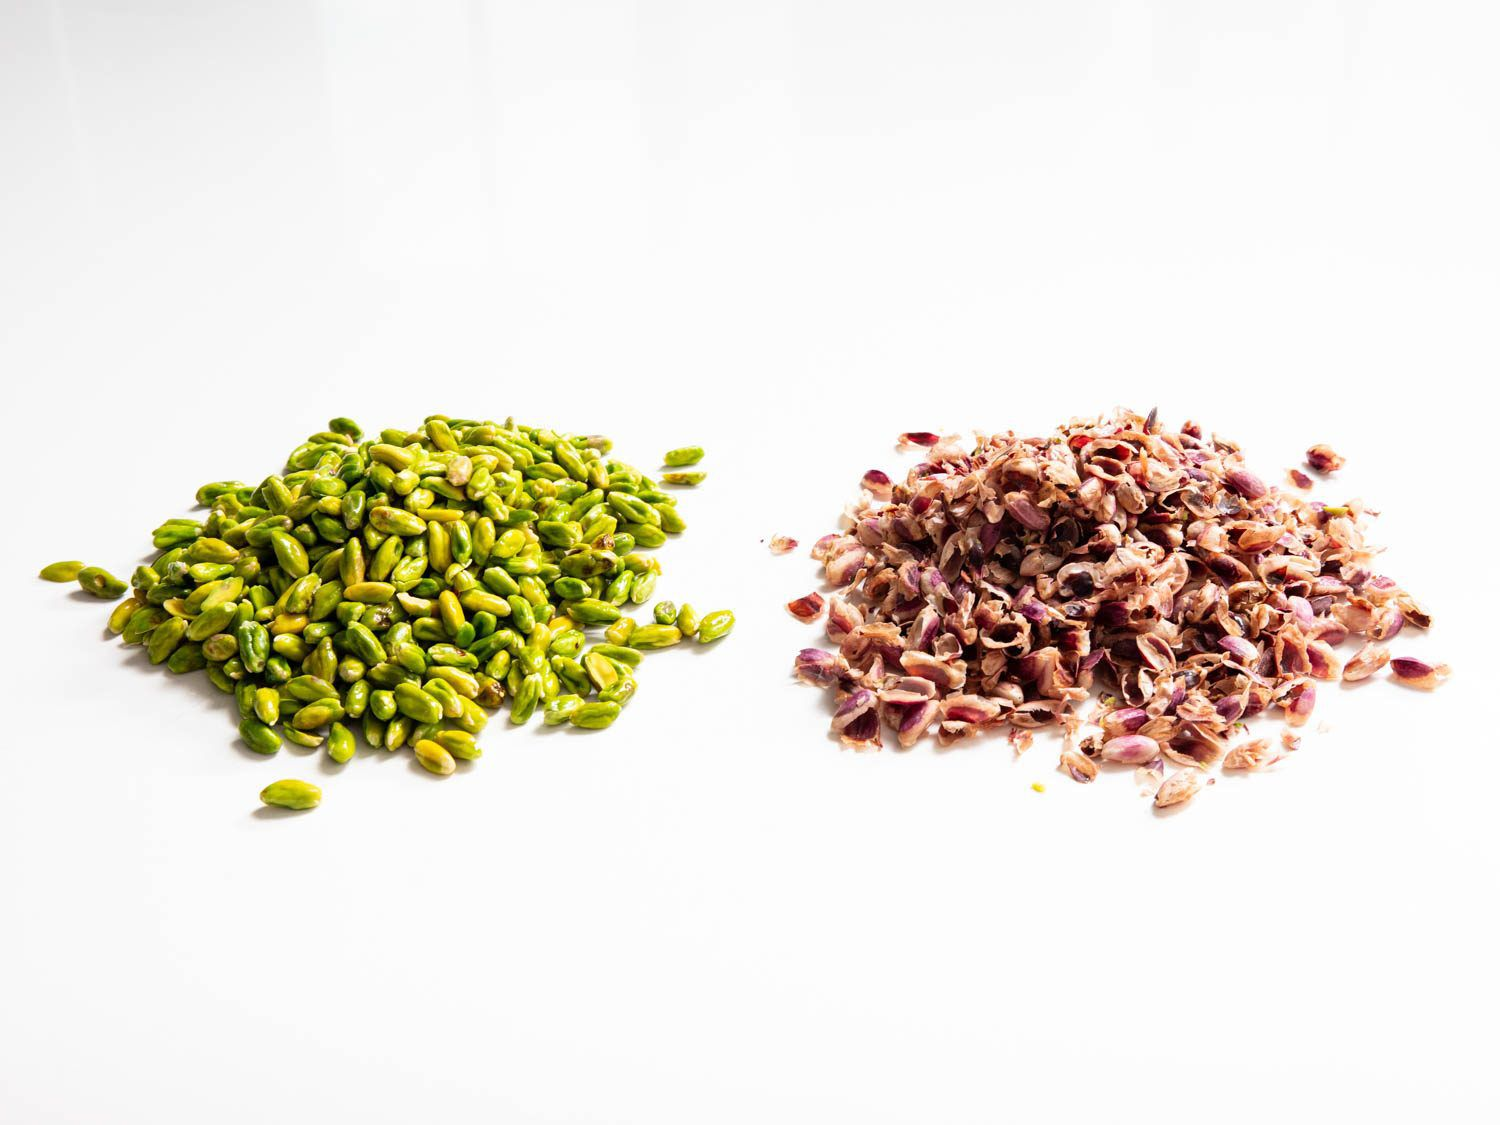 blanched Sicilian pistachios and their skins